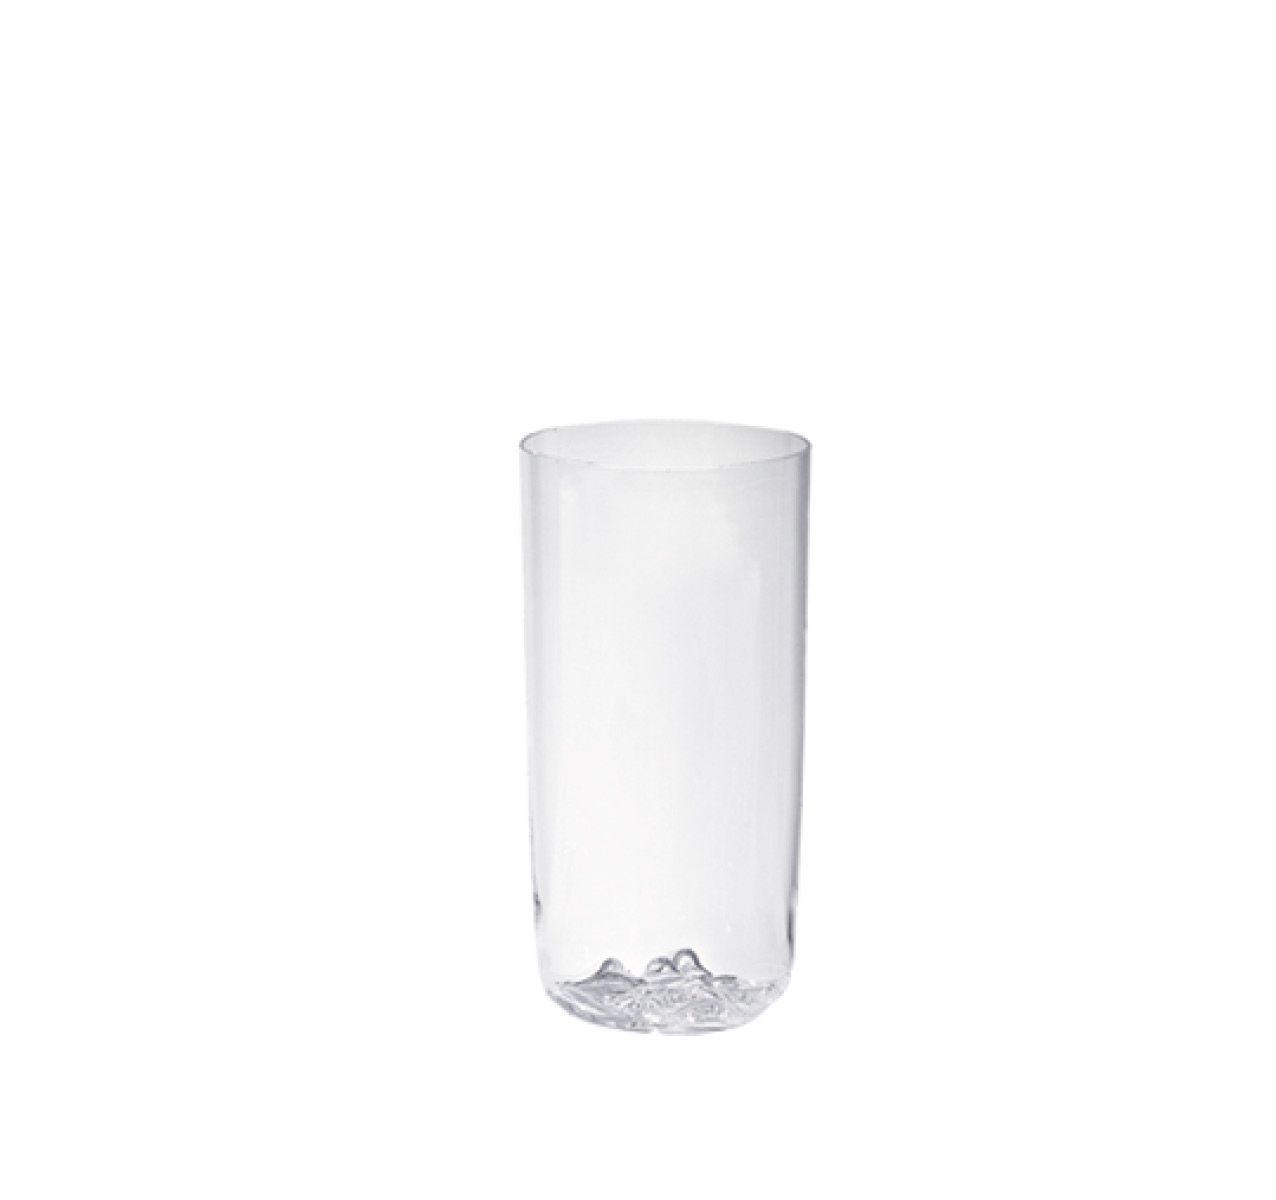 Nuuk Vase VII Glass